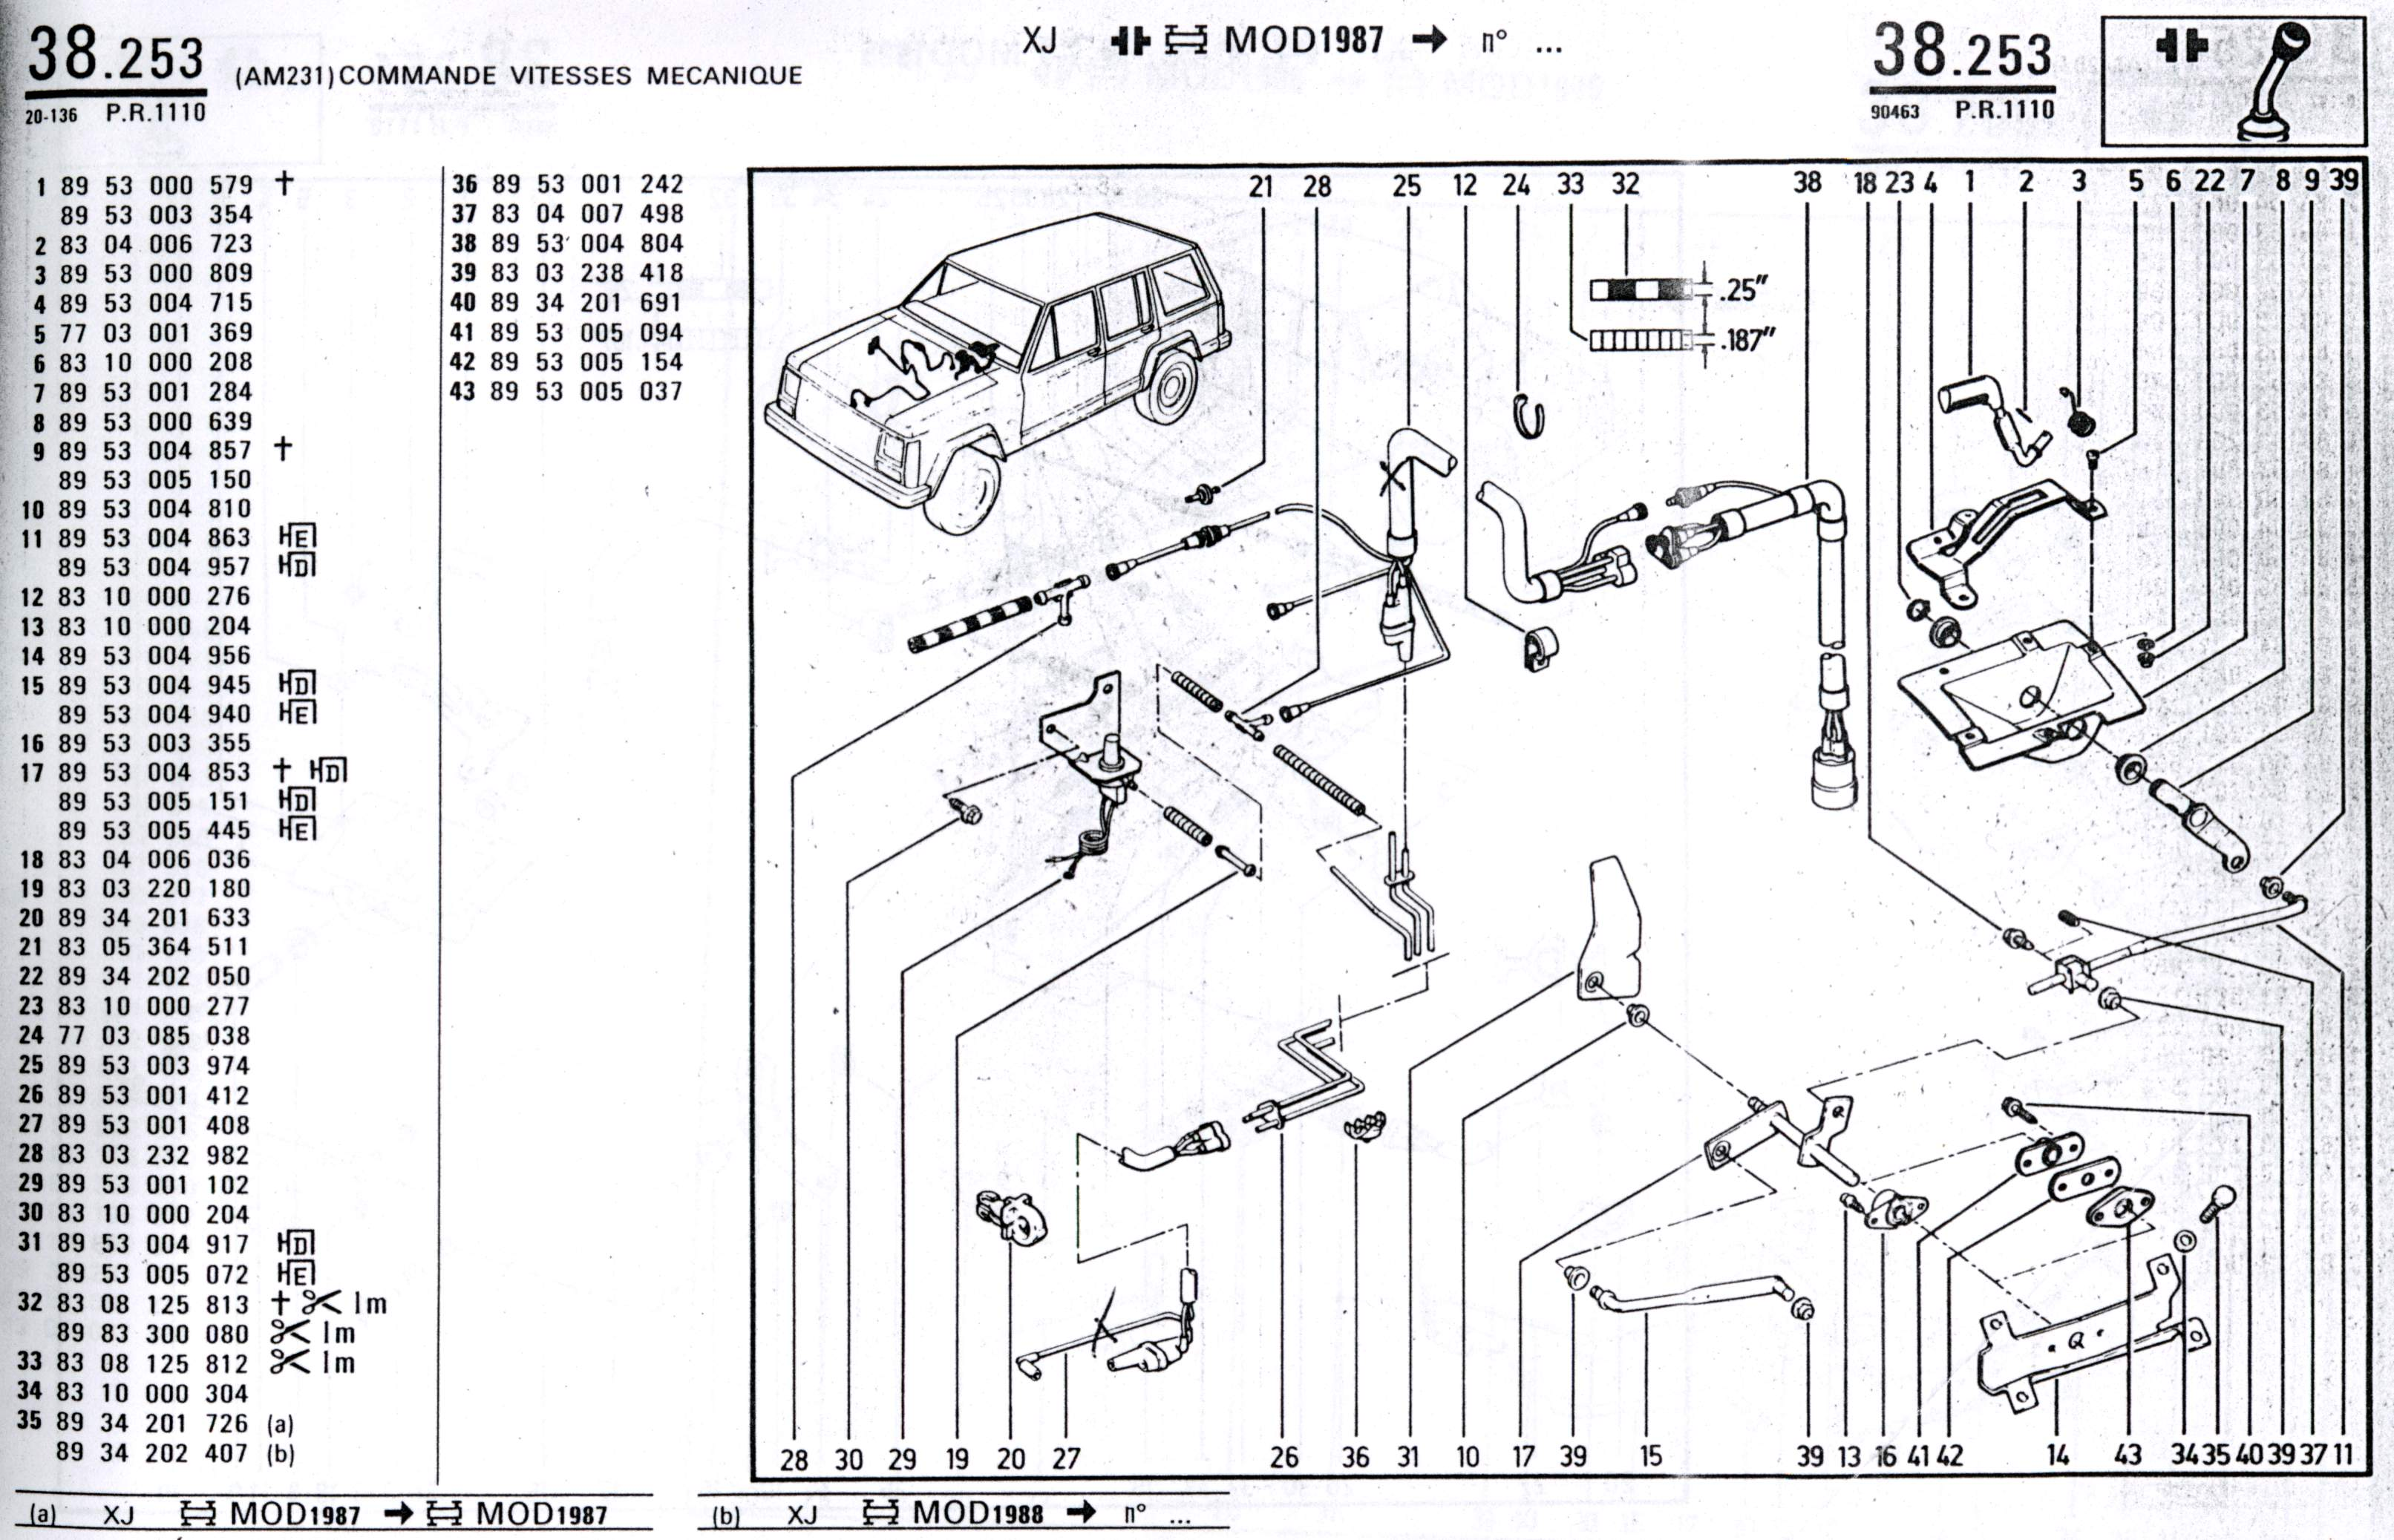 microfiches diagrams xj connection by gianmy digilandercommand trac vacuum hoses diagram (xj 1987 1991, t case